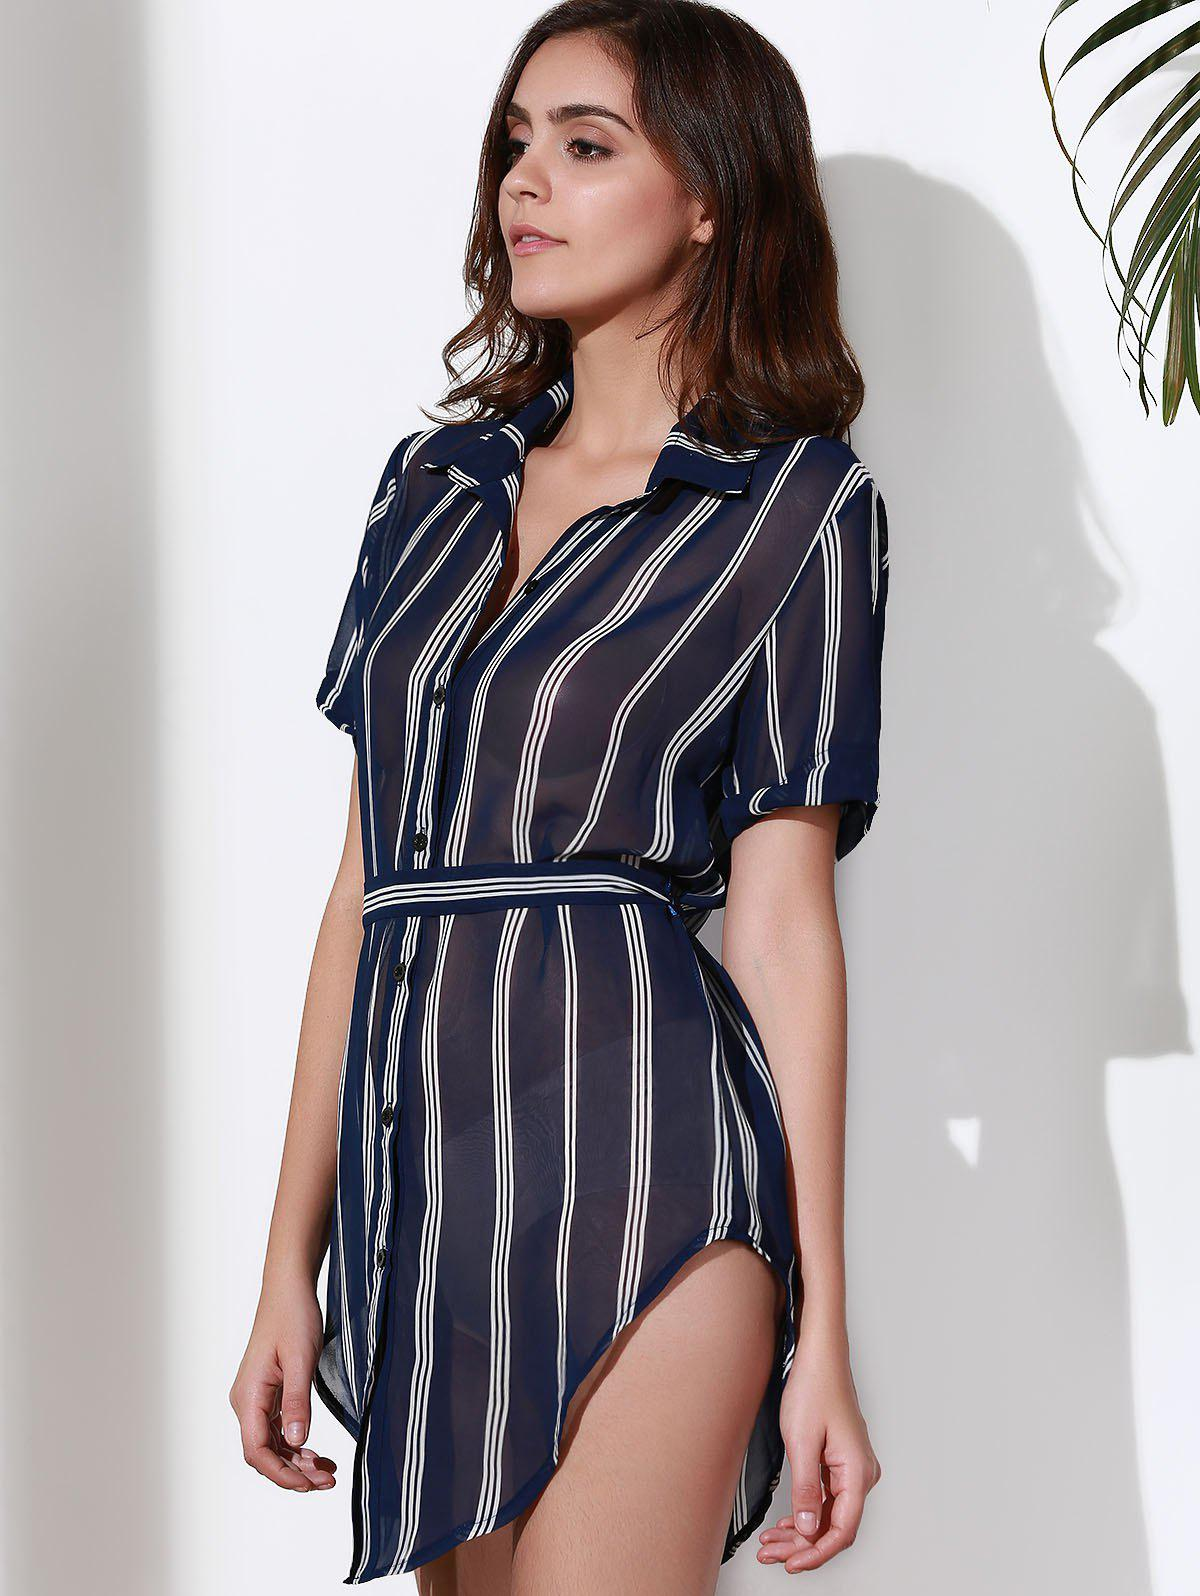 Stylish Turn-Down Collar Short Sleeve Striped Women's Shirt Dress